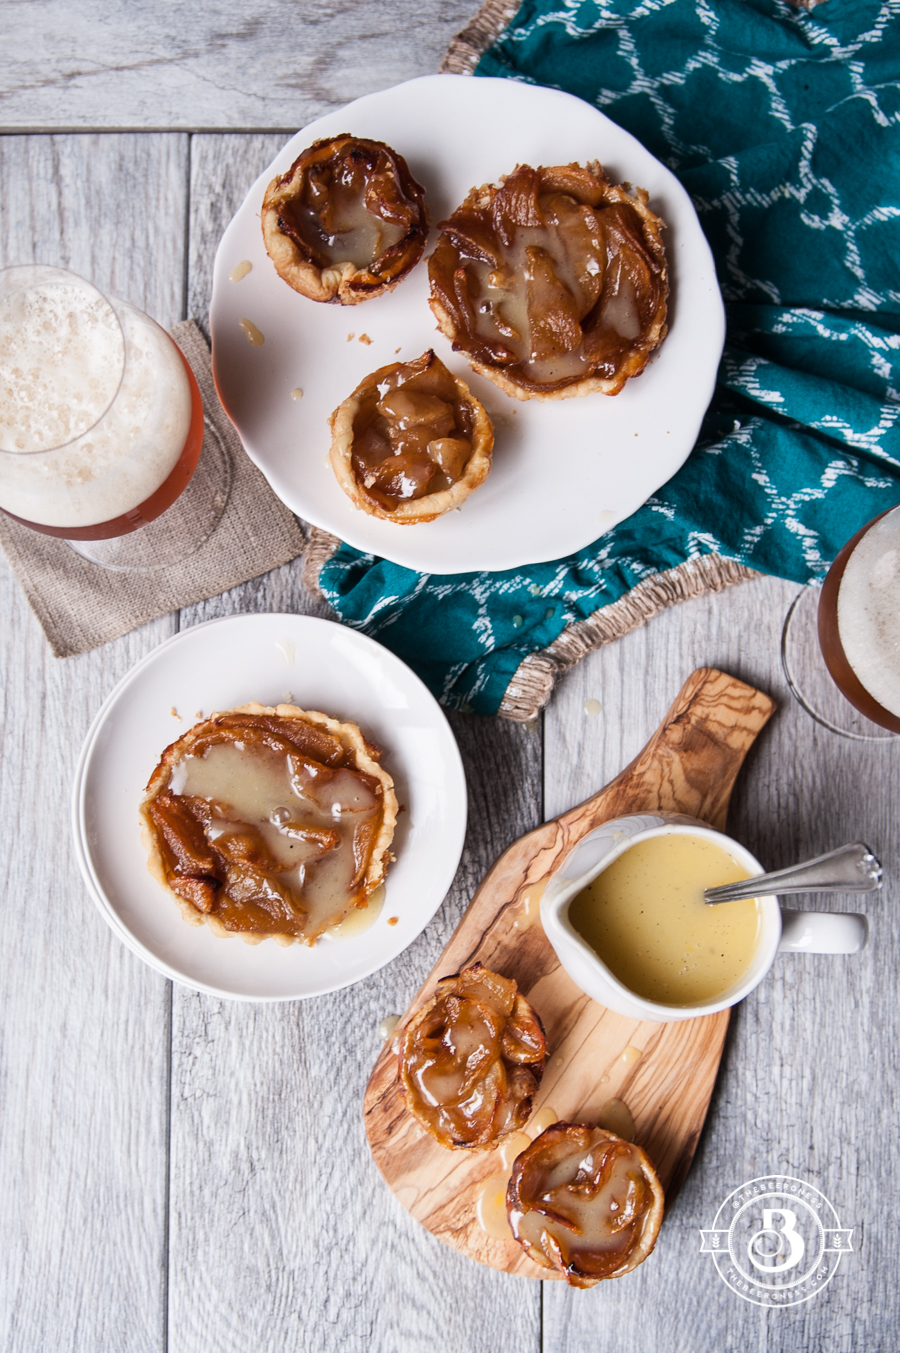 ... Caramelized Apple Tart with Saison Crème Anglaise - The Beeroness